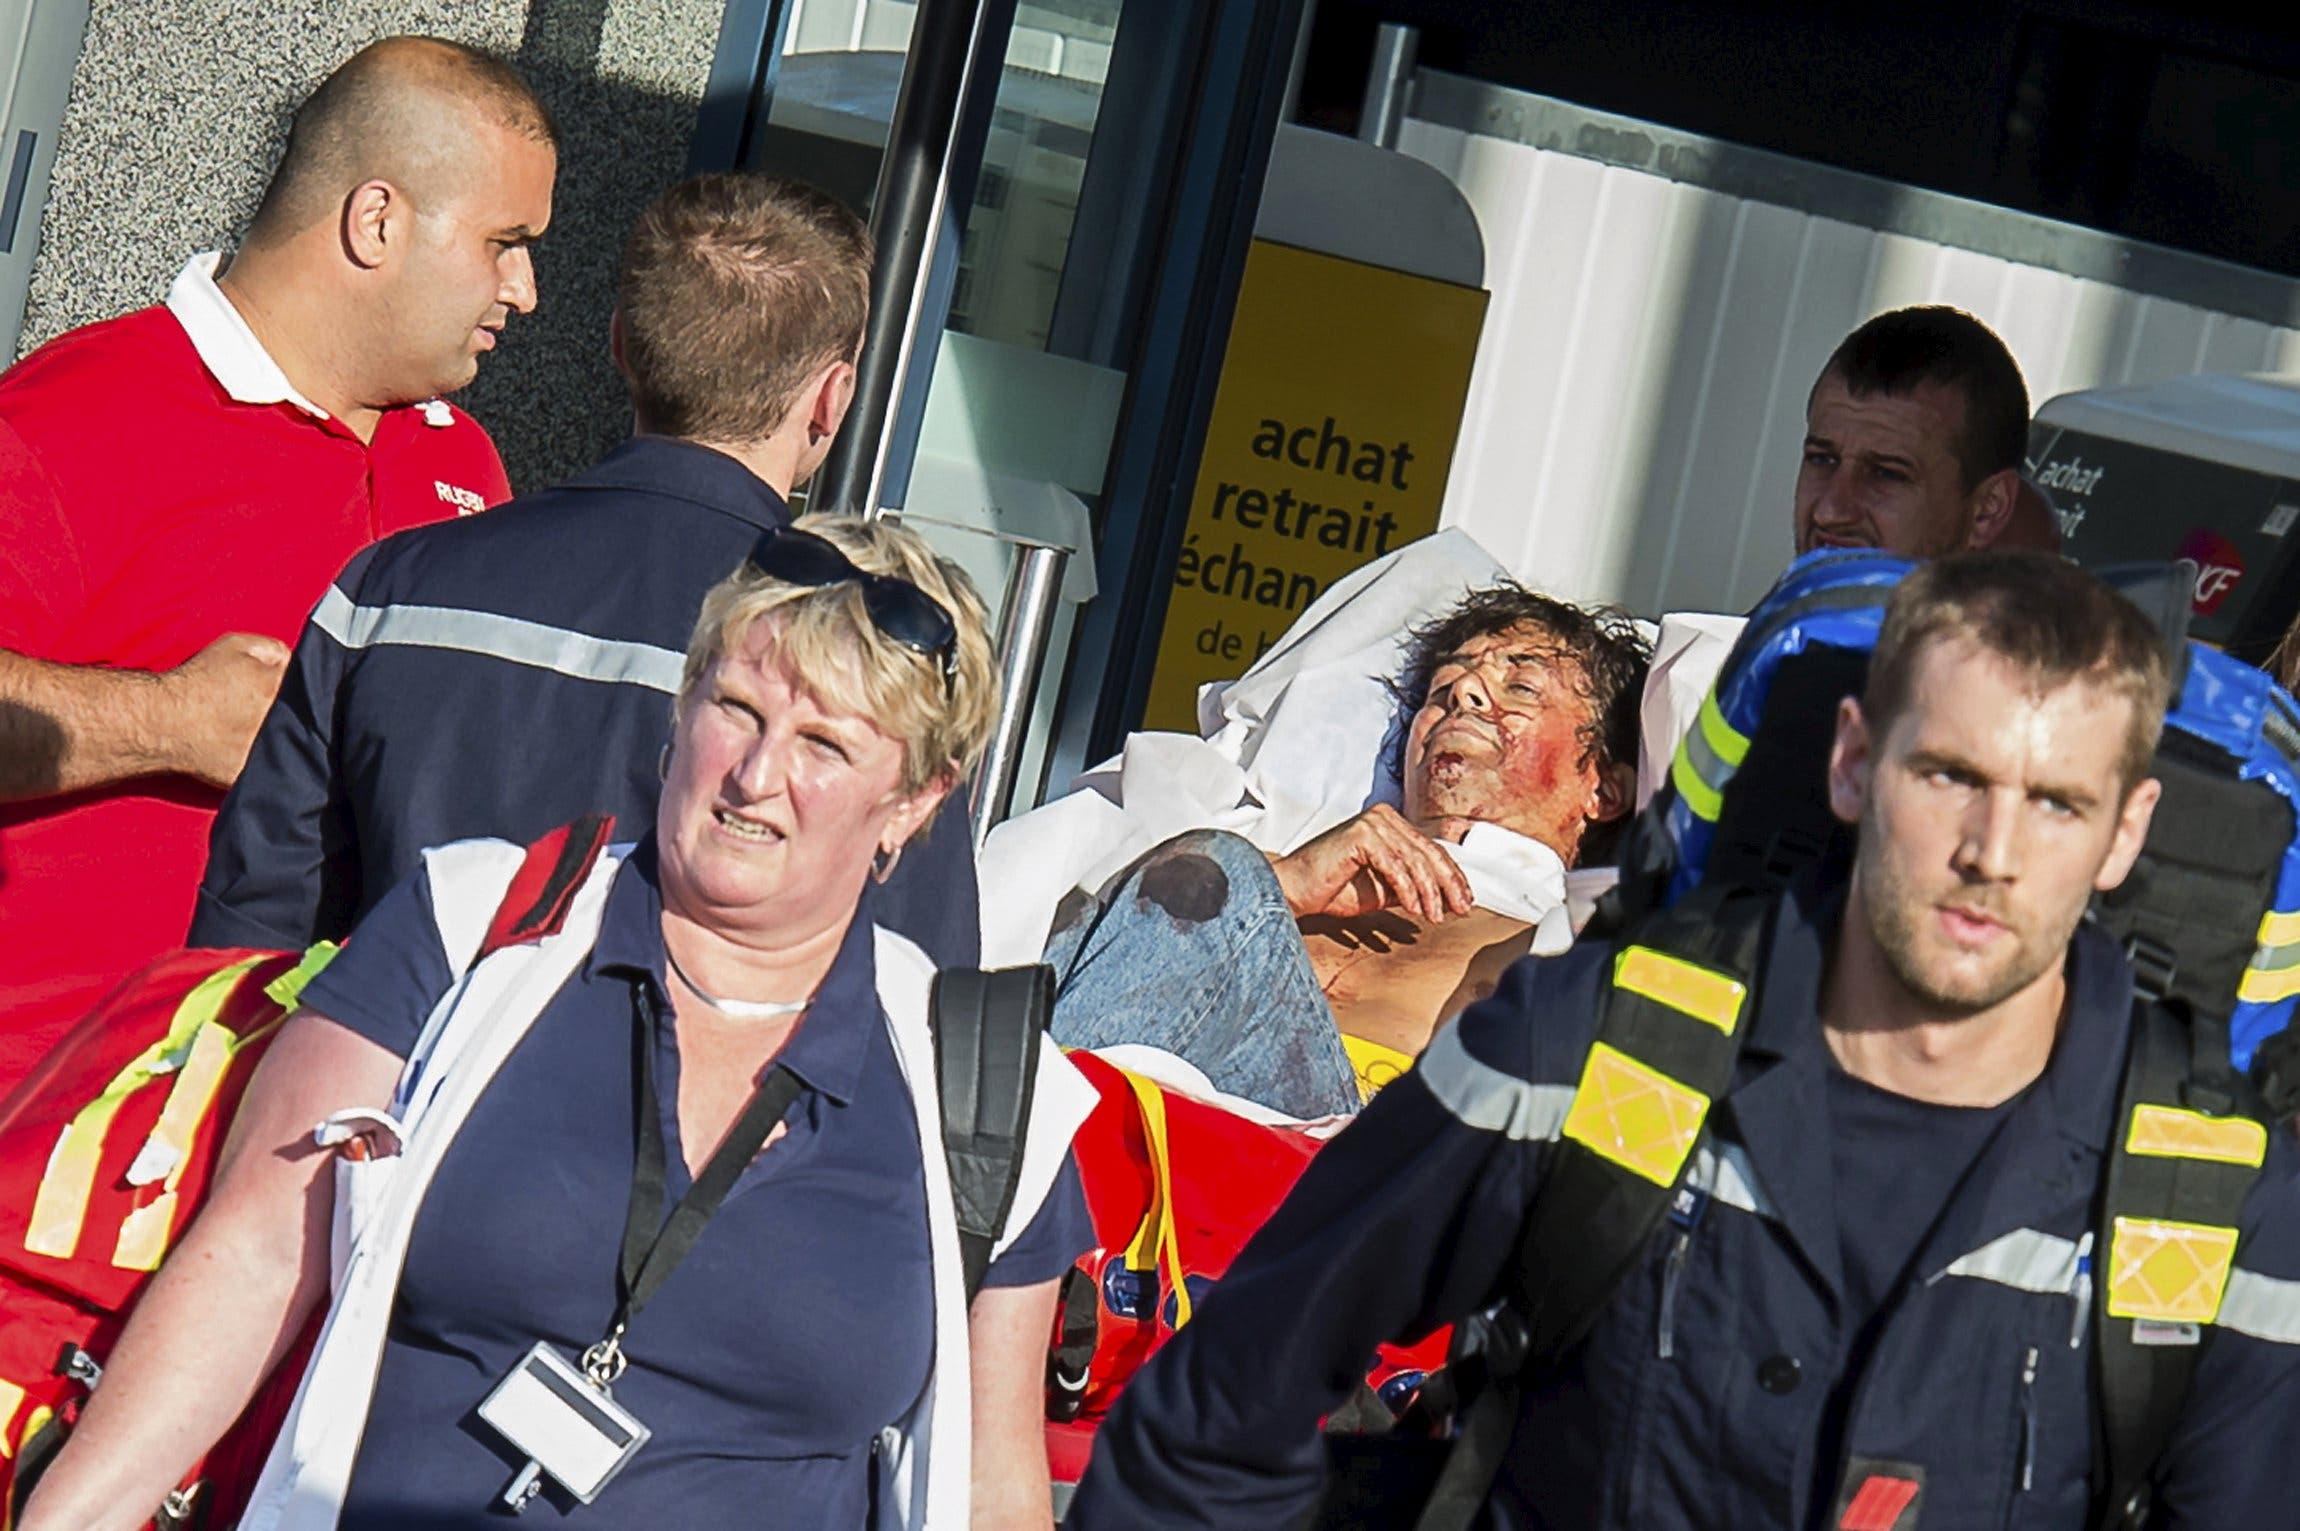 French emergency services transport a victim after a shooting on the Amsterdam to Paris Thalys high-speed train in Arras, France, August 21, 2015.  (Reuters)